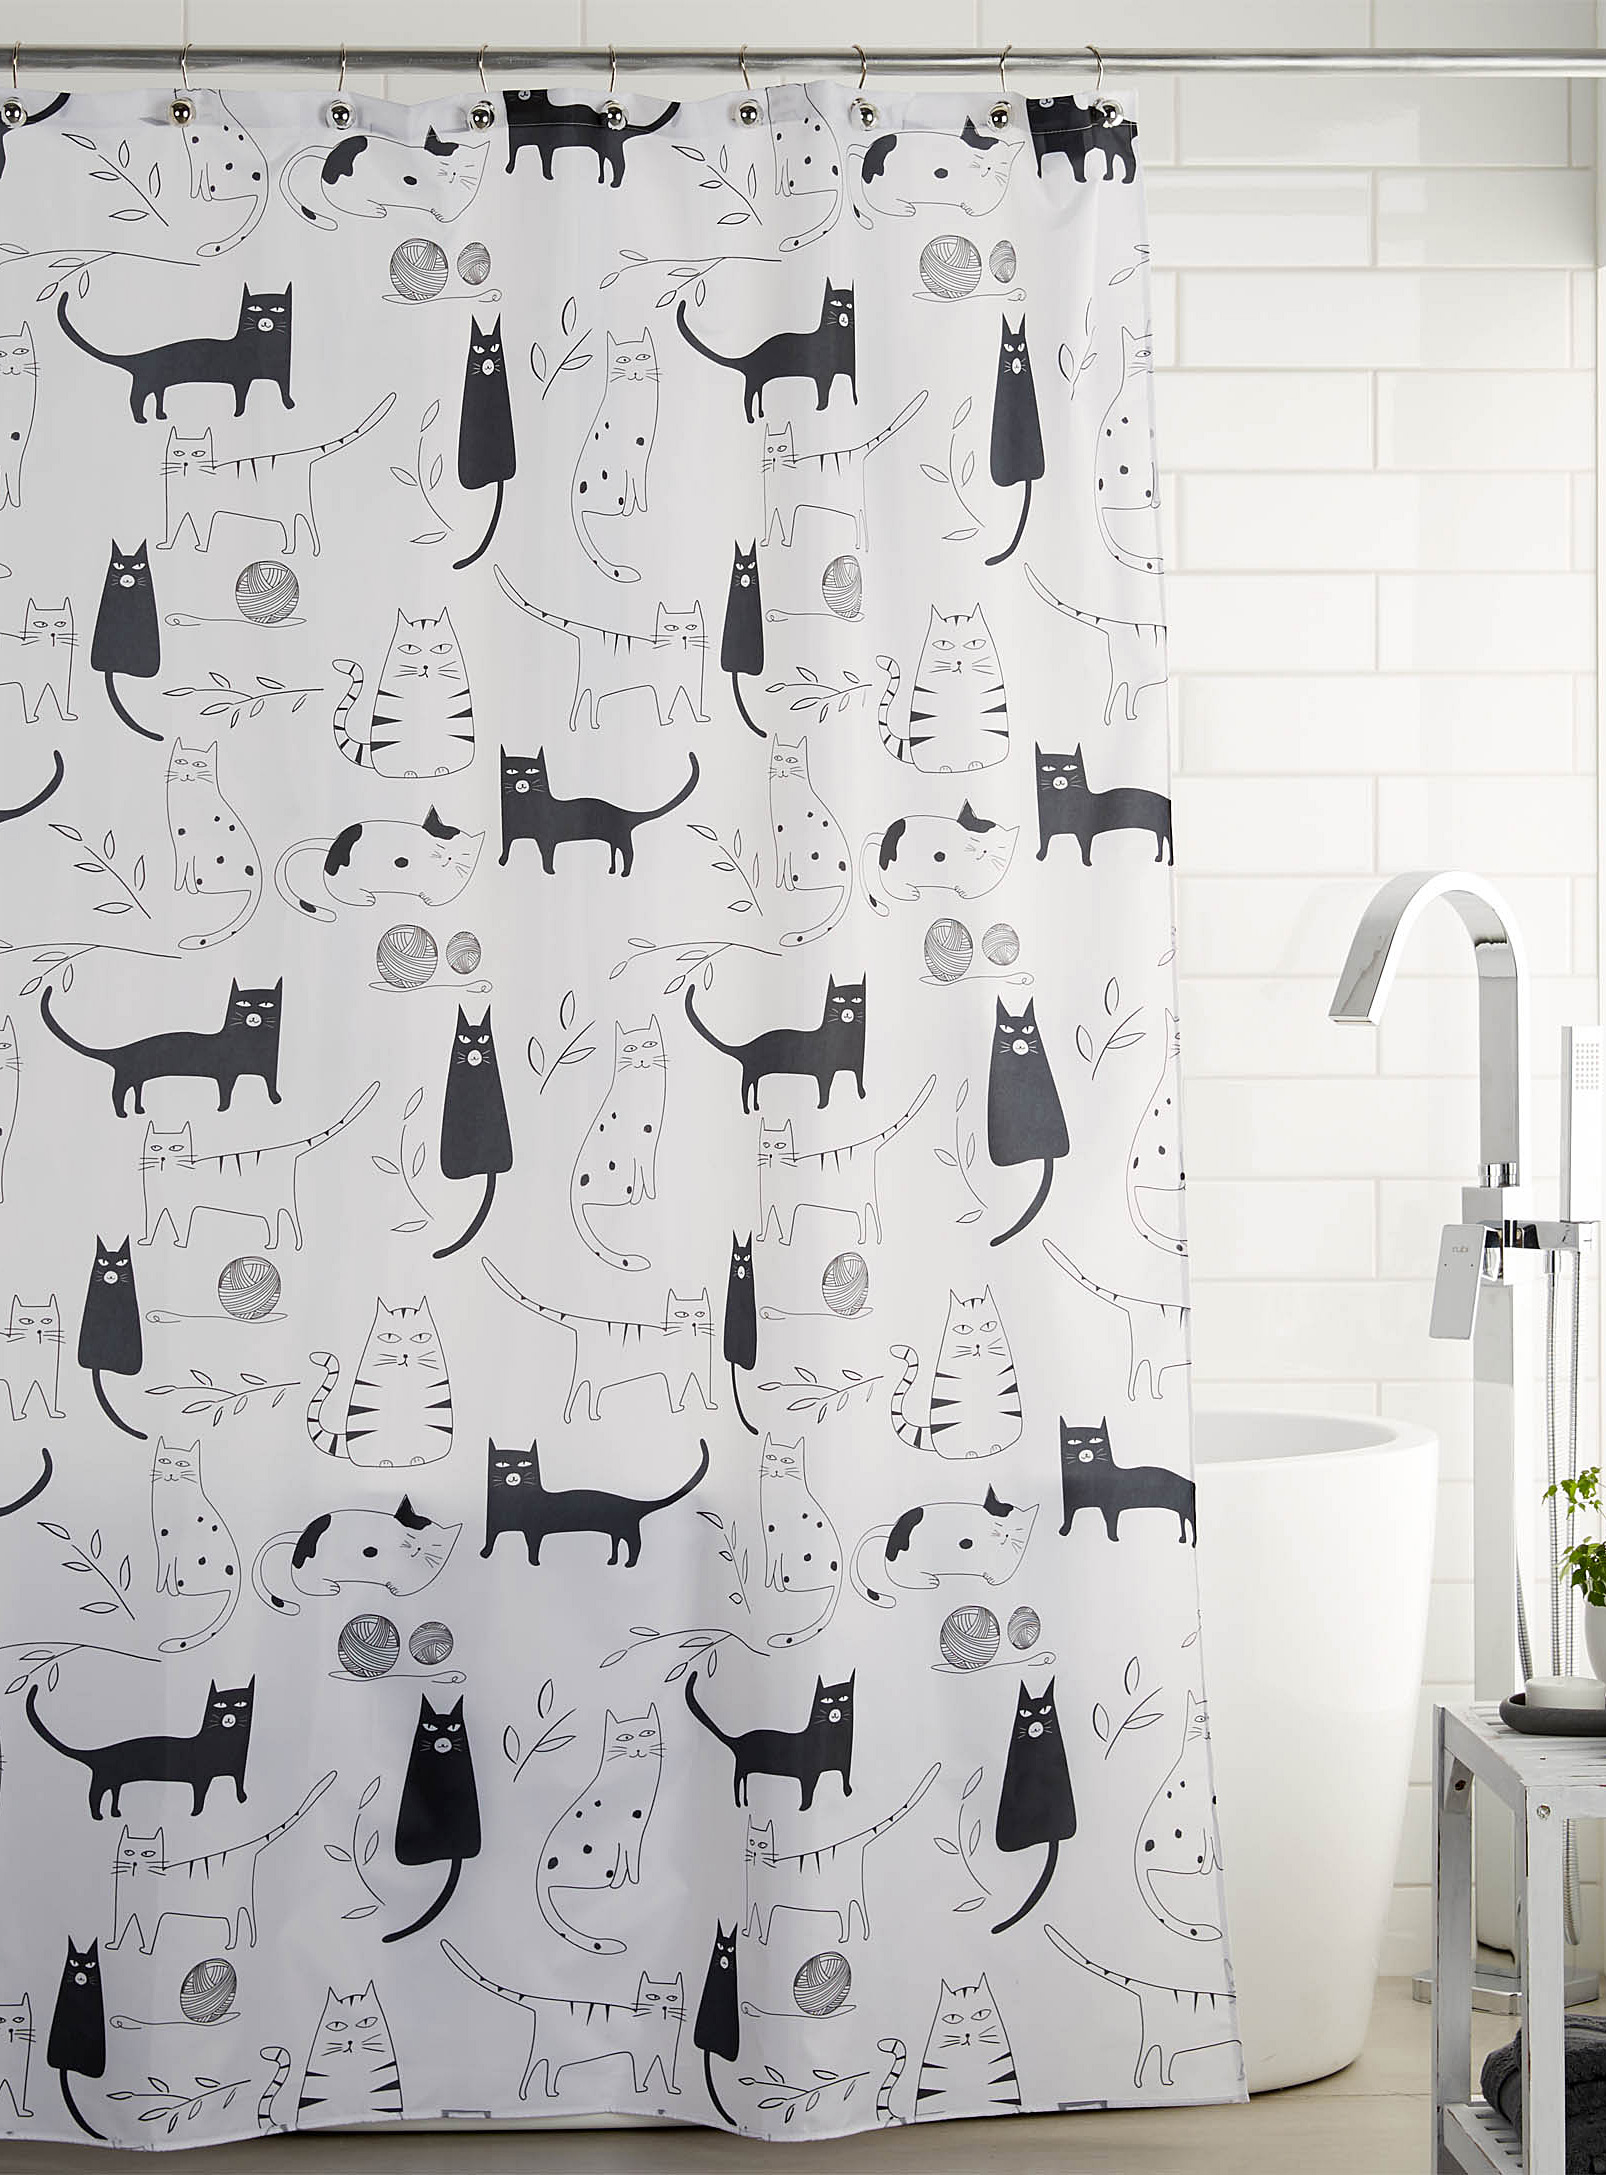 Simons - La Maison Simons Cats Shower Curtain